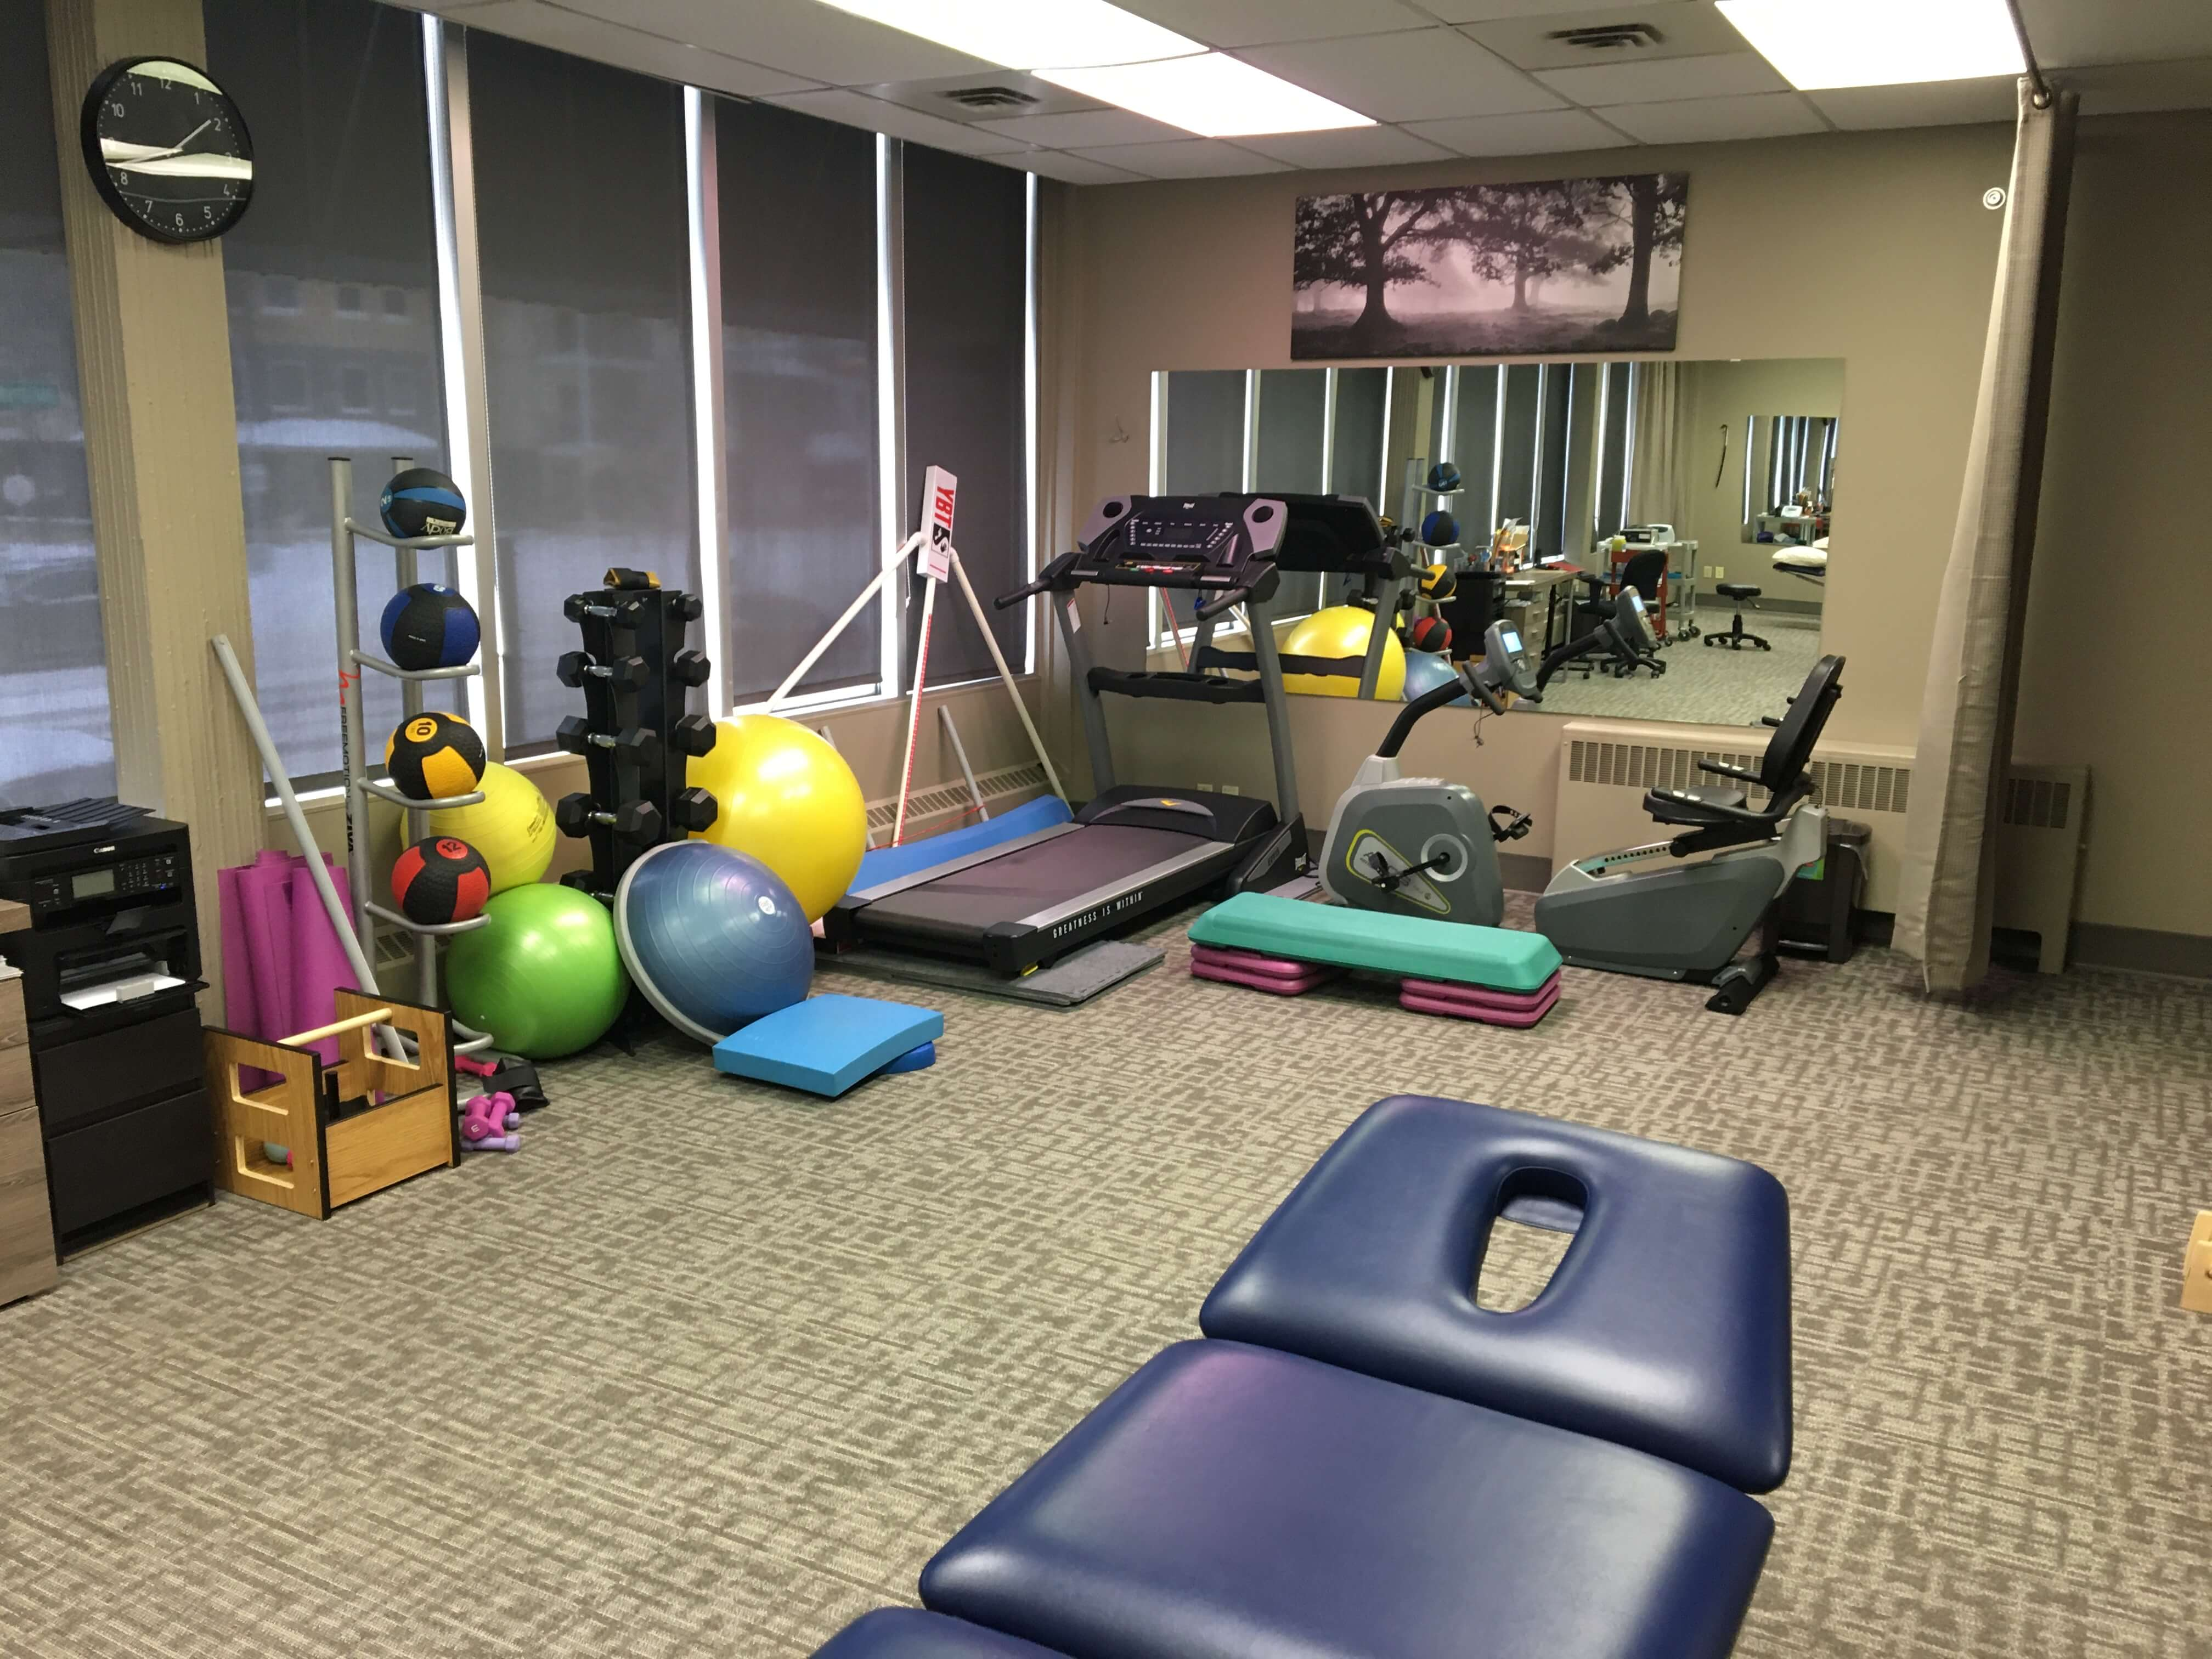 physiotherapy room with exercise equipment